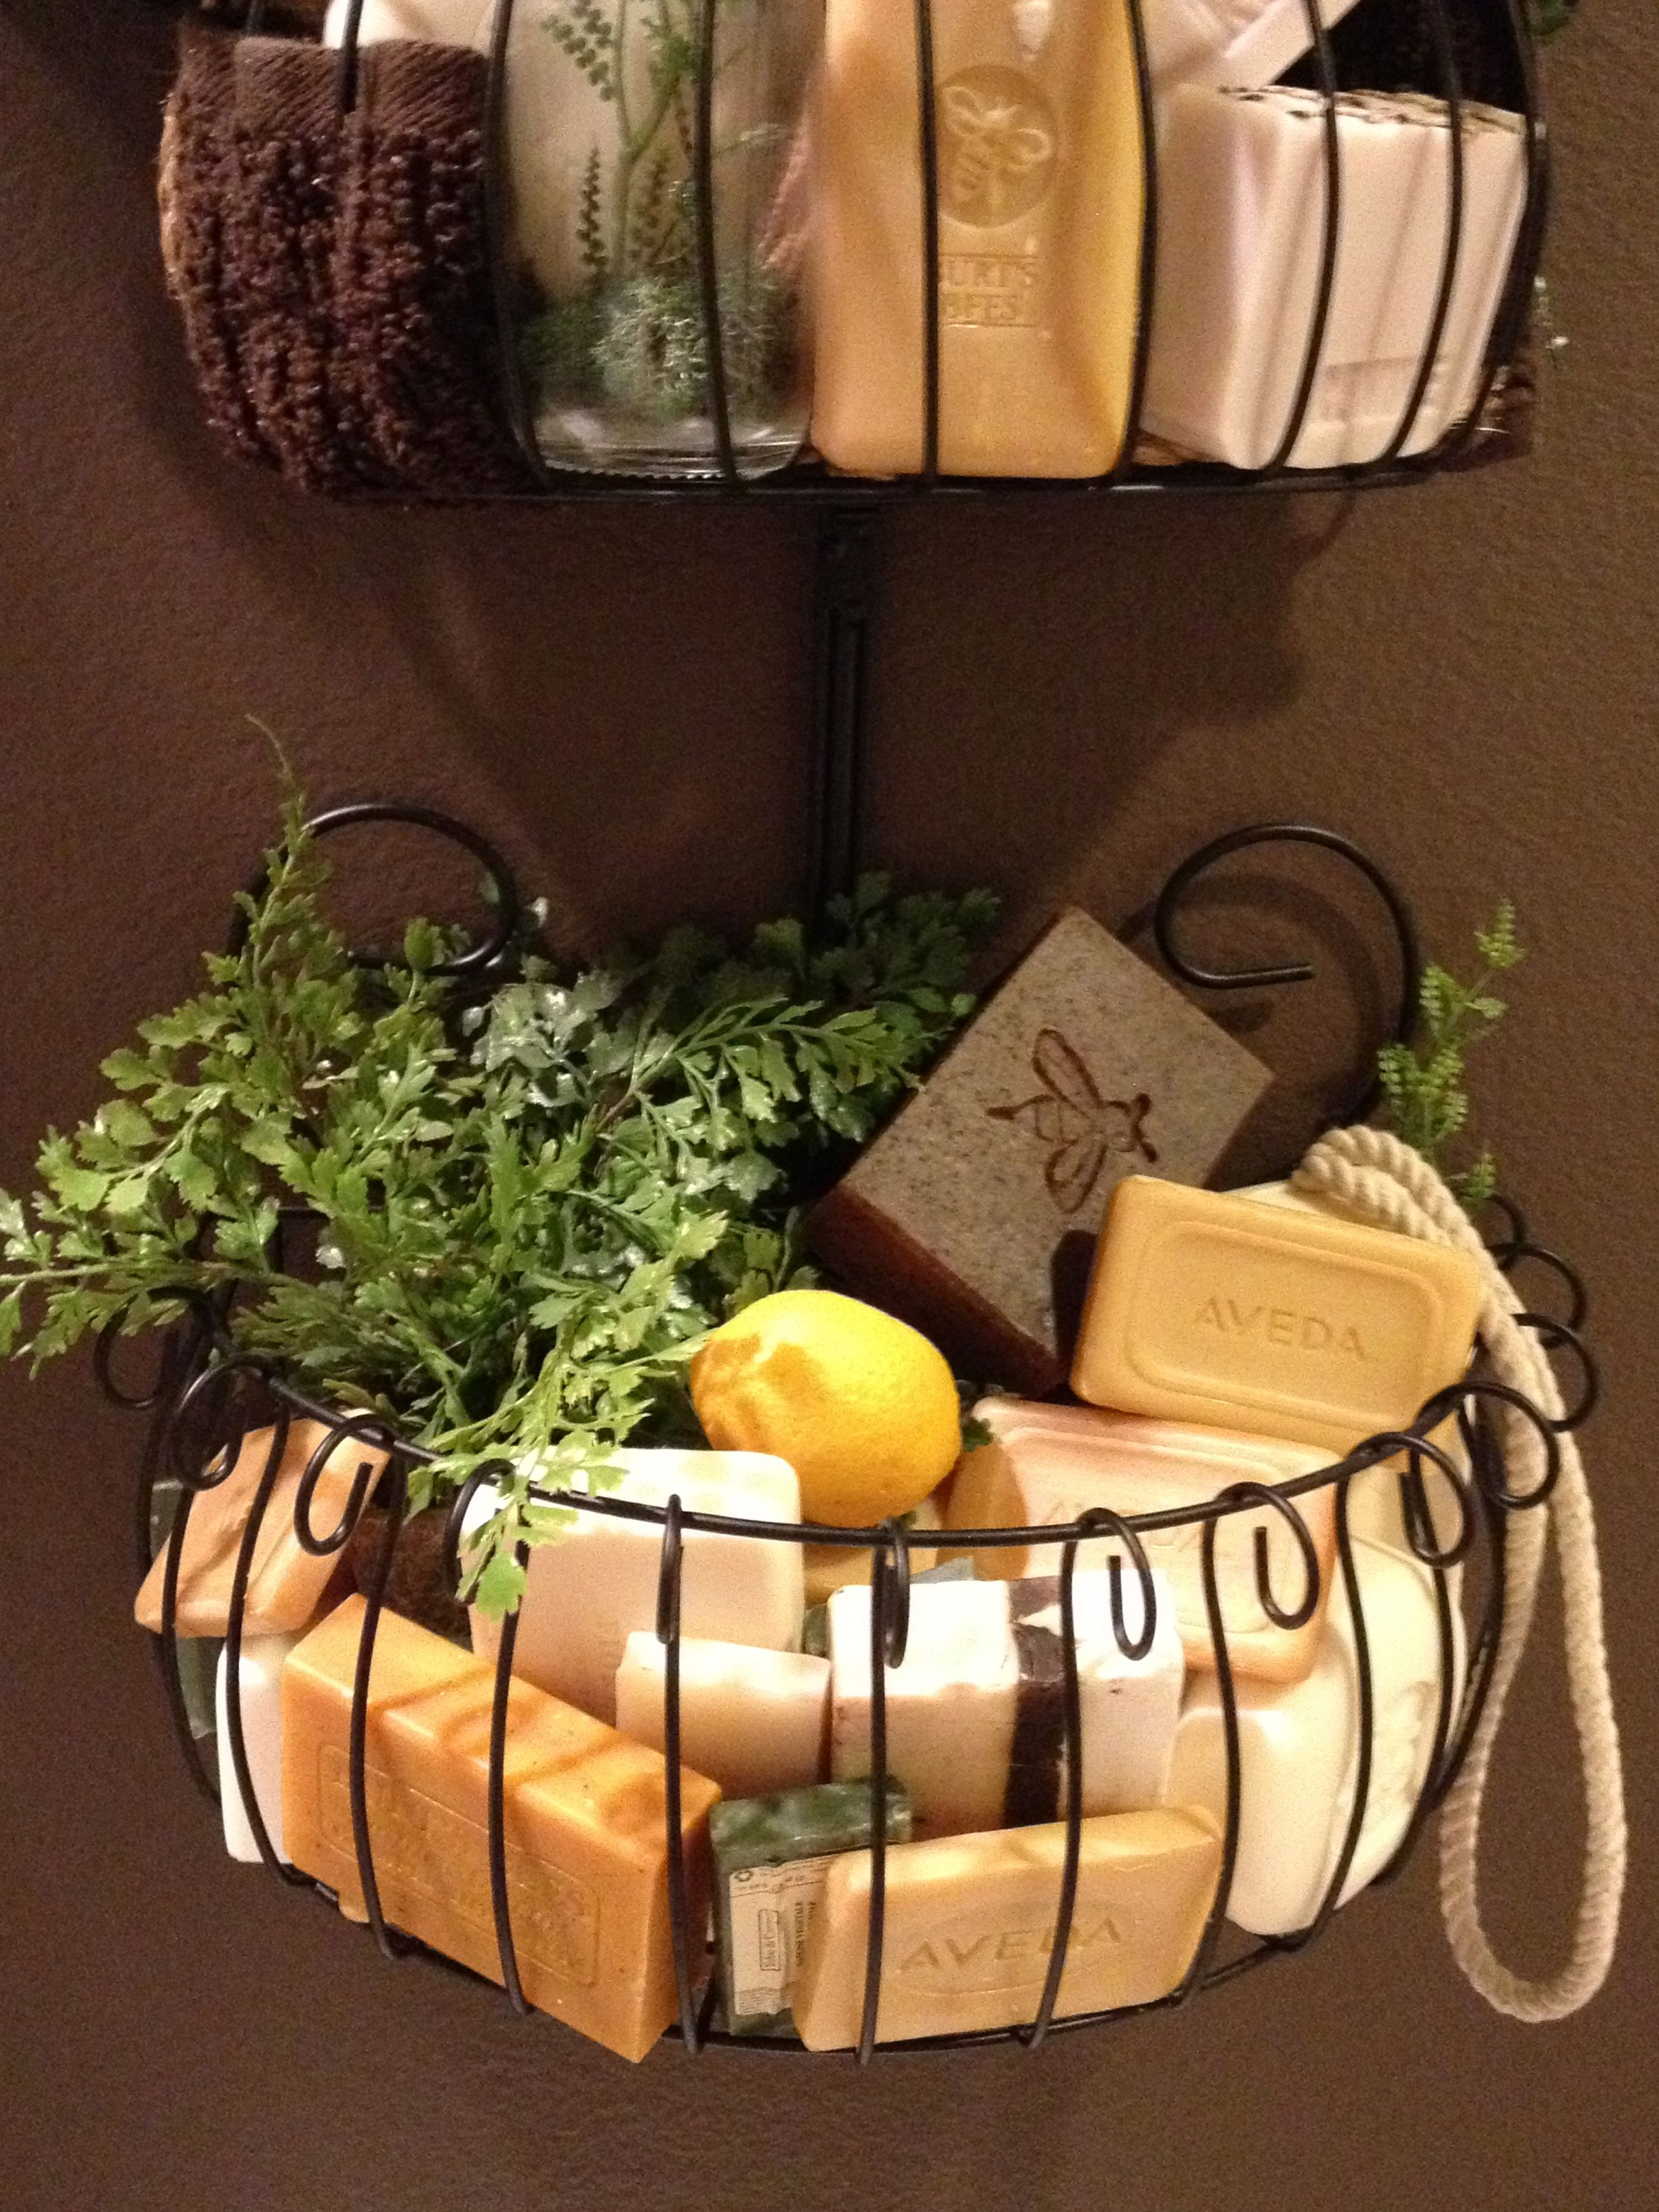 Decorative Soaps For Bathroom.Bathroom Soap Display Organized Can Probably Put In Shower